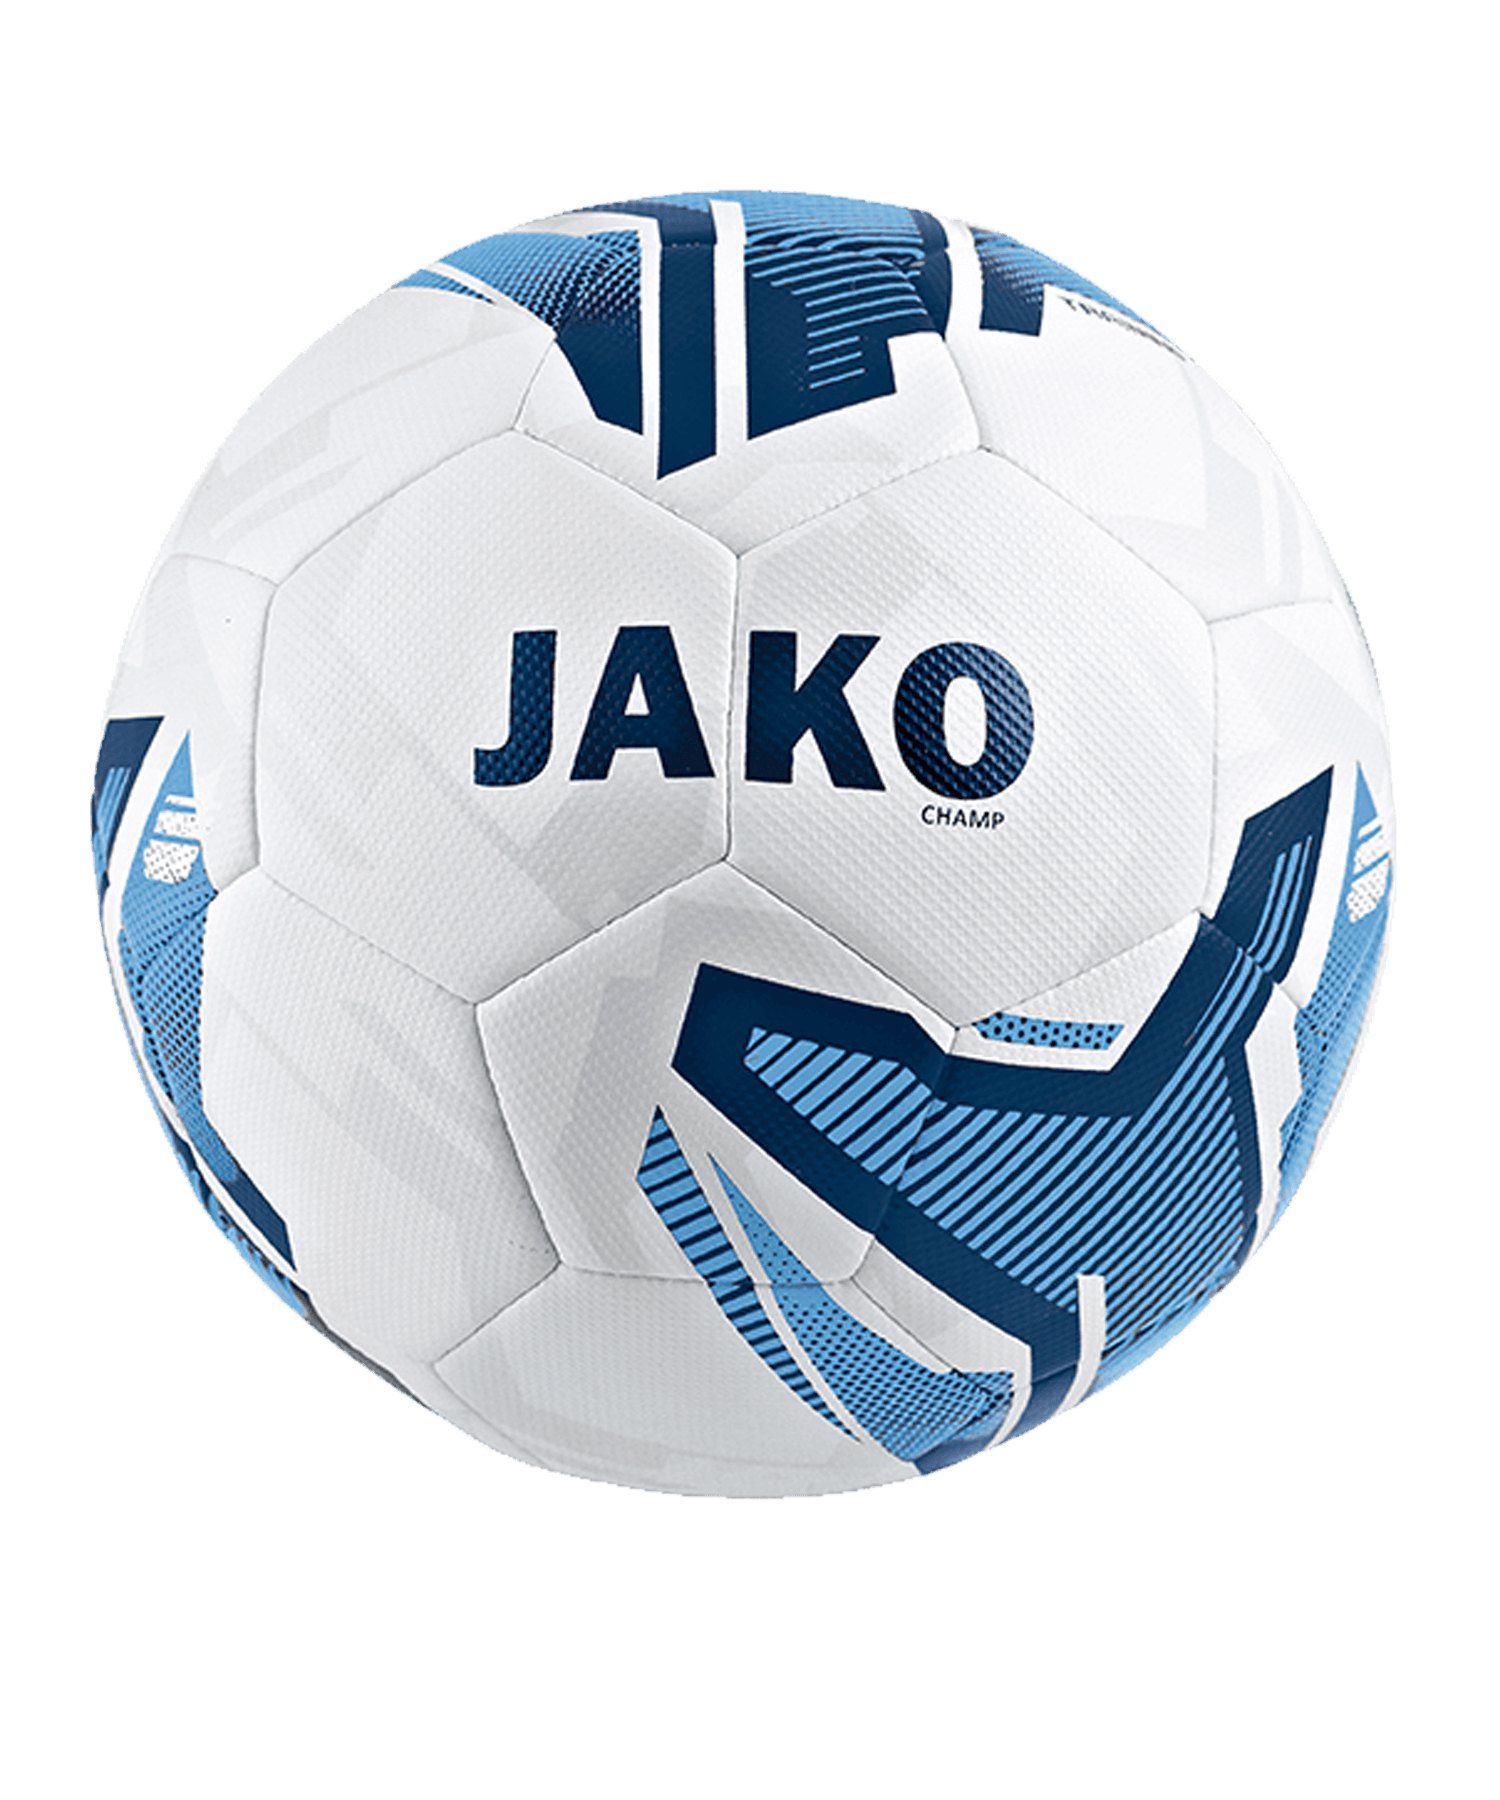 JAKO Champ Trainingsball Weiss F45 - weiss